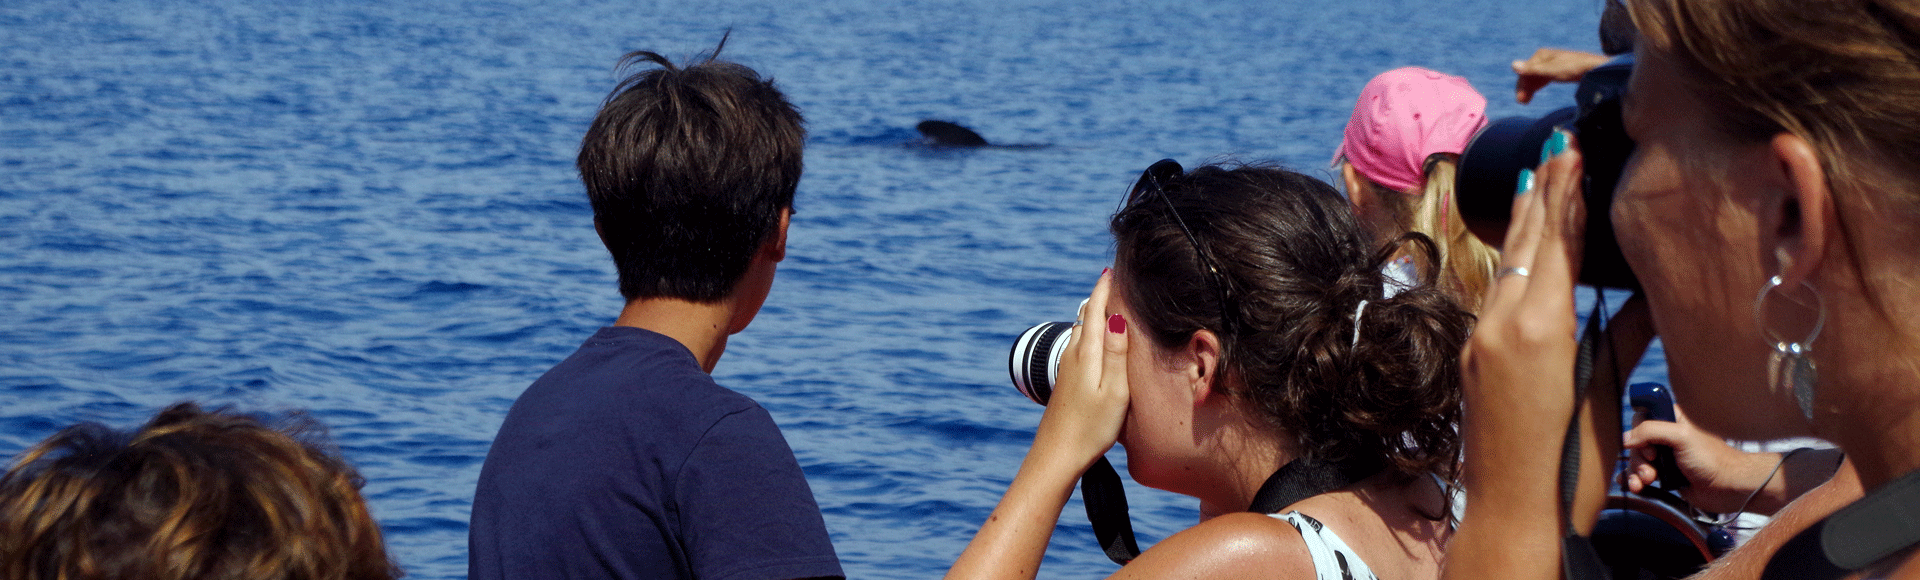 Whale watching 17 july 1h45 pm /// Porquerolles Discovery Friday 19 july  day trip